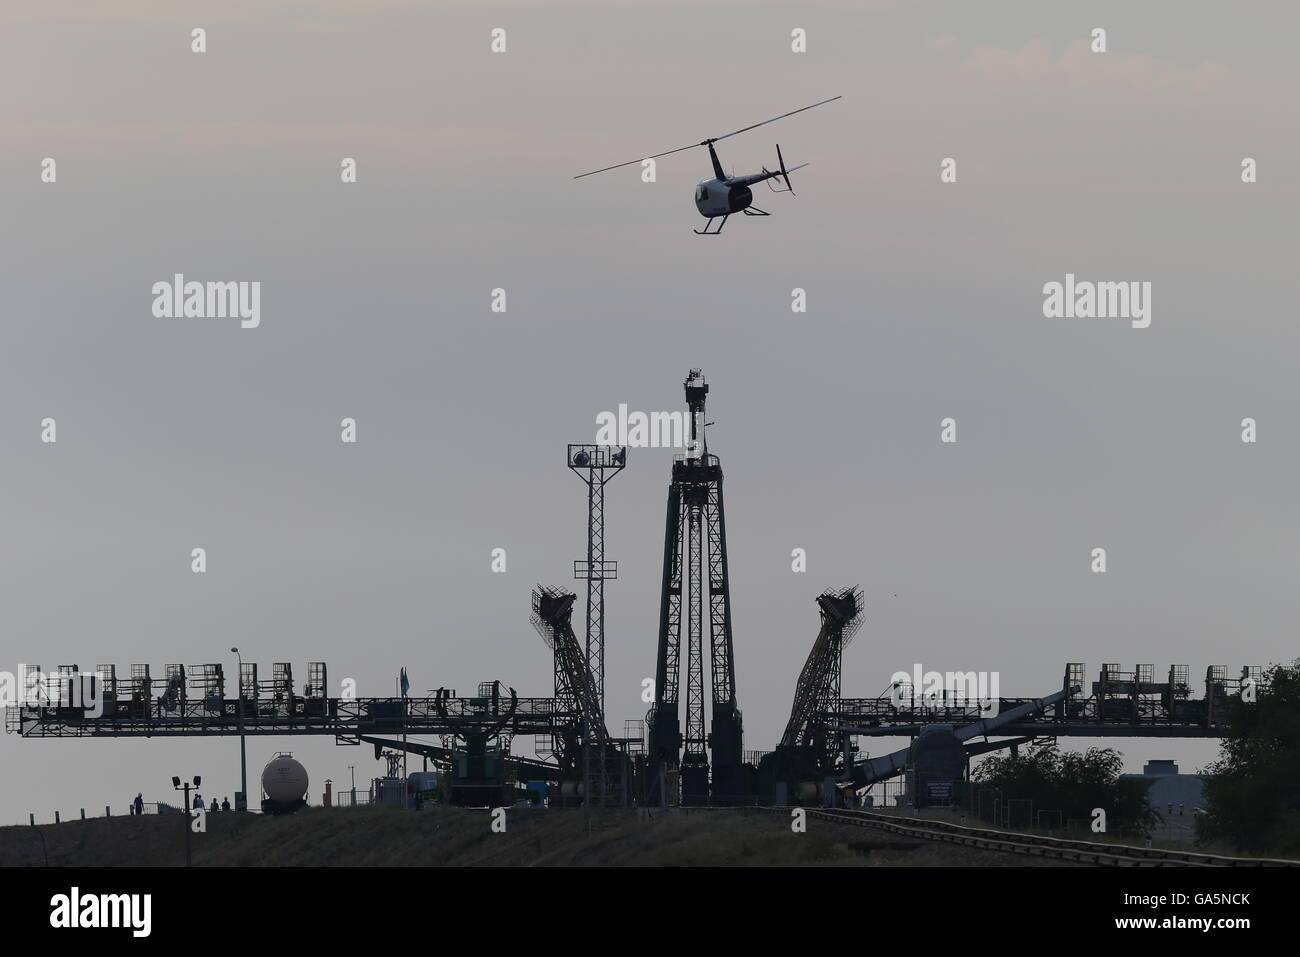 Kazakhstan. 4th July, 2016. A helicopter flying over a launch pad at the Baikonur Cosmodrome. Credit:  ITAR-TASS - Stock Image